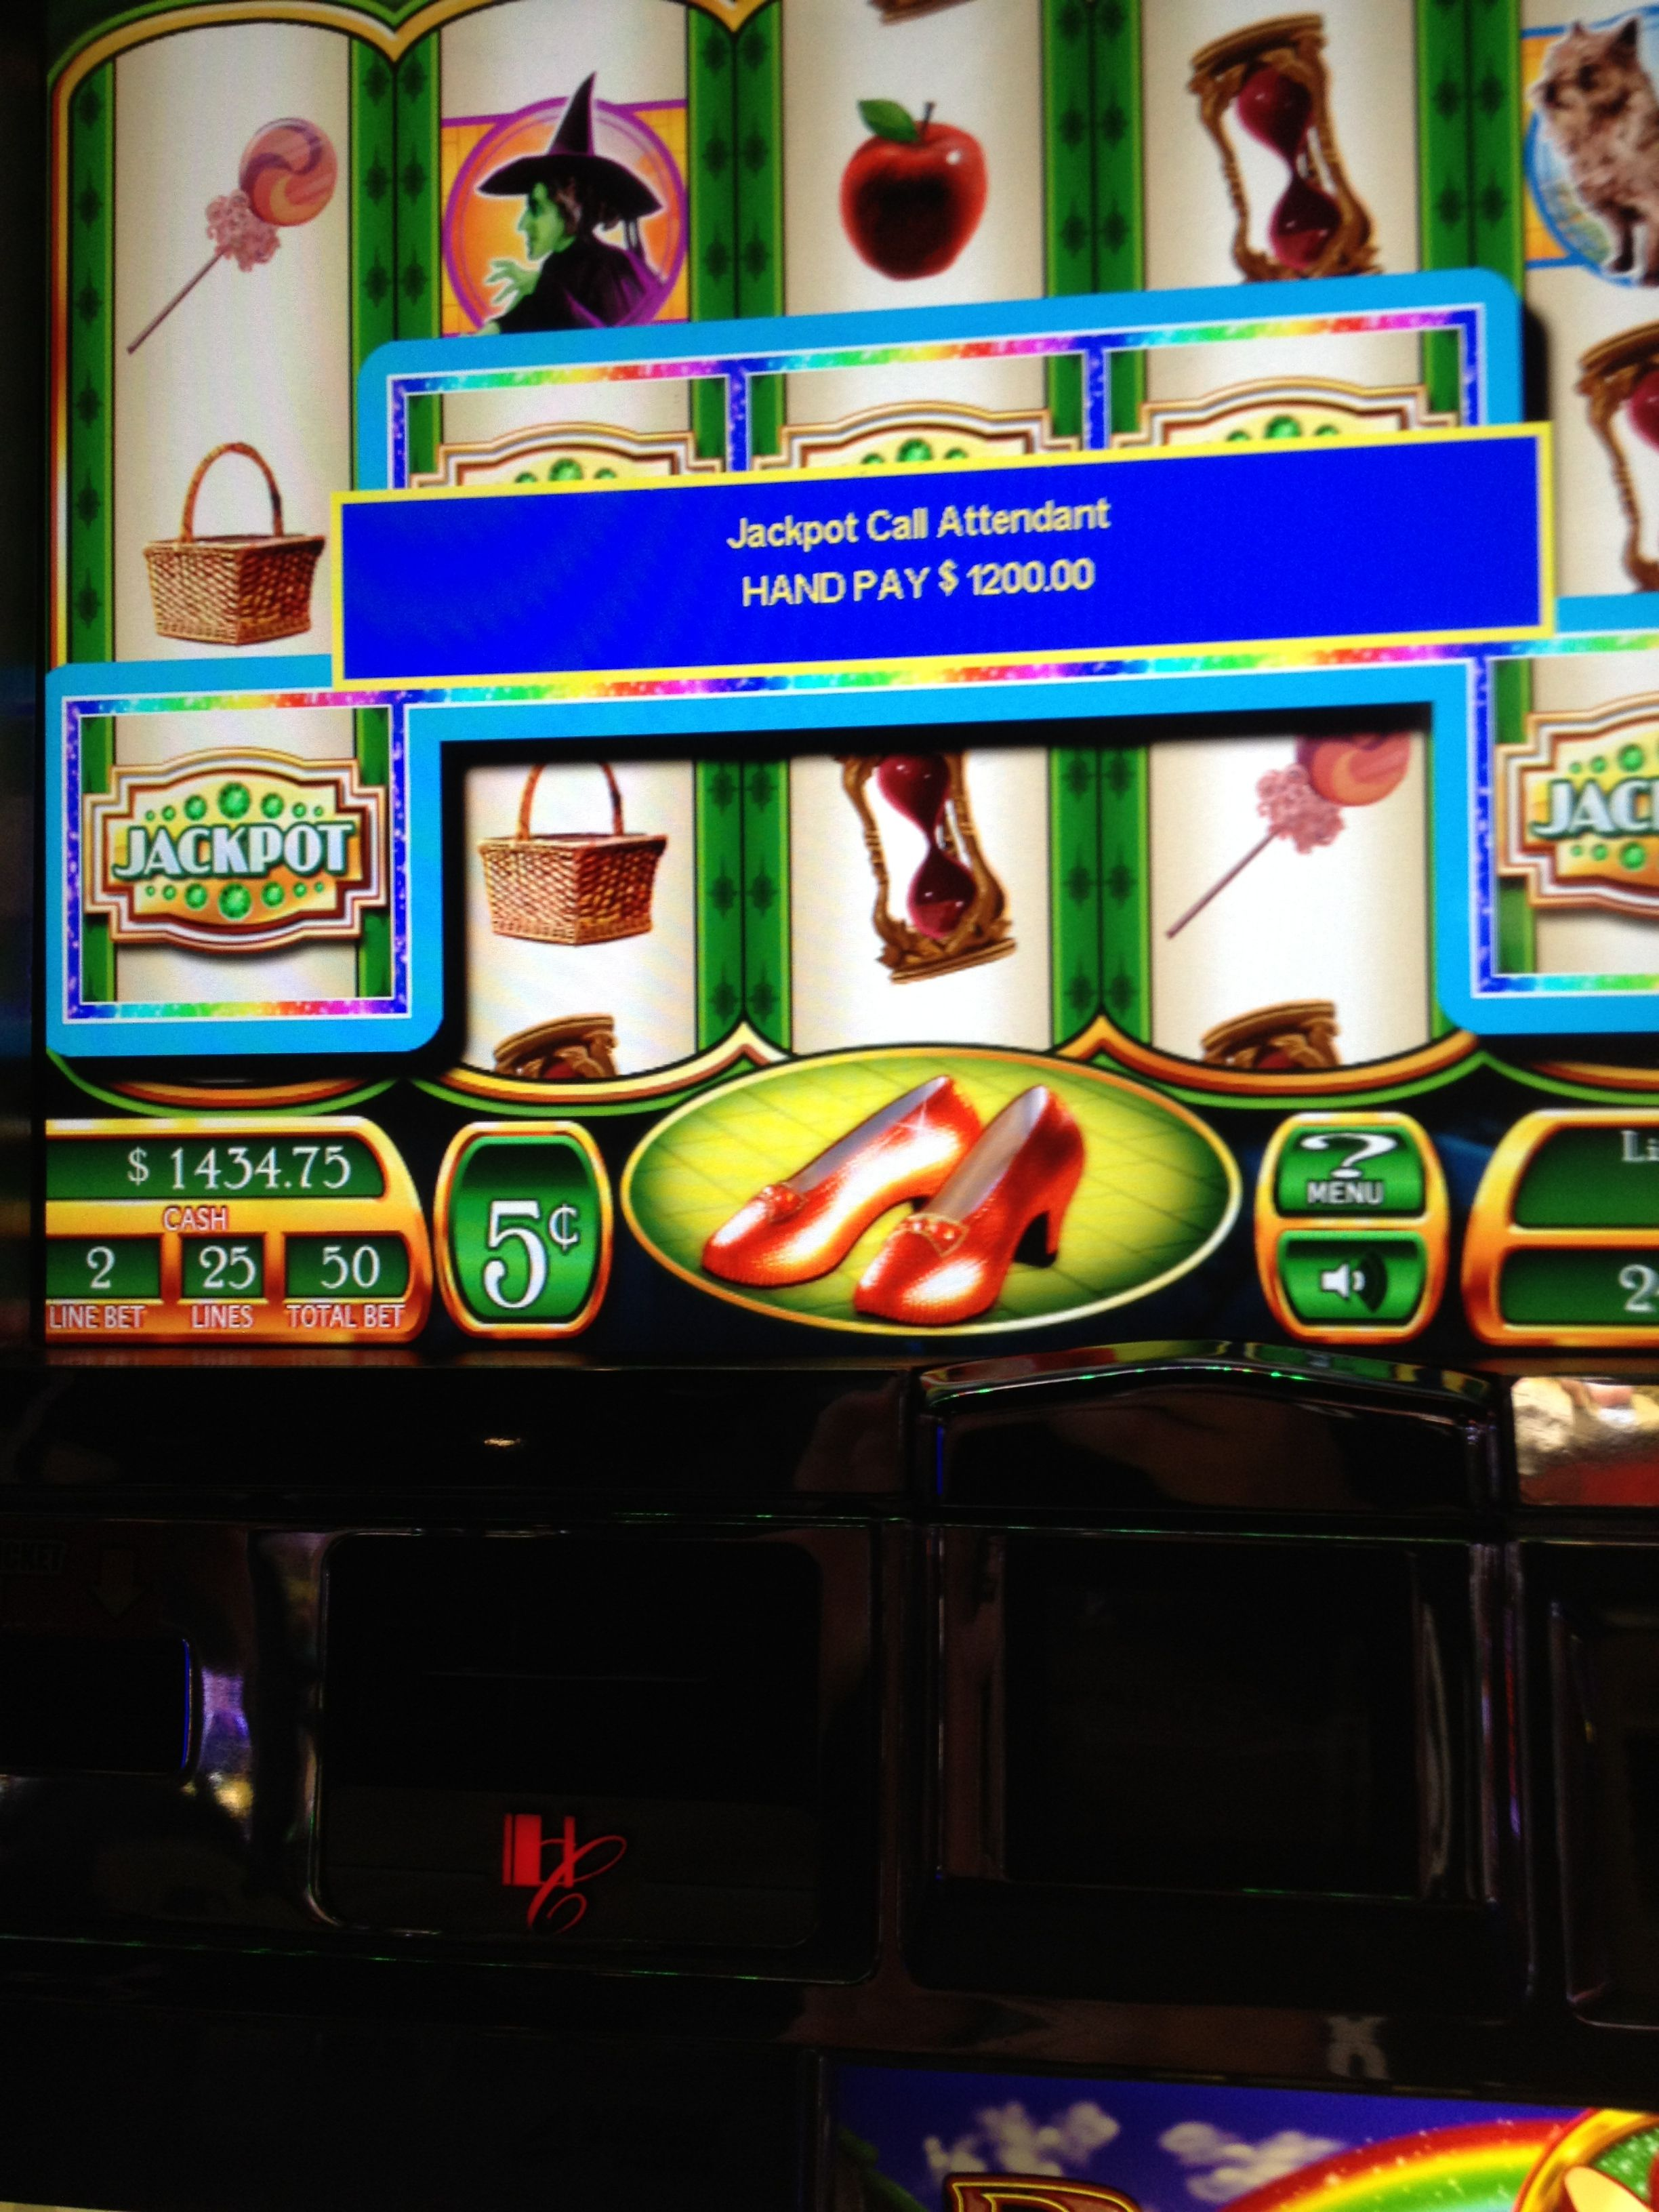 Slot machines at hollywood casino pa best monitor for playing poker